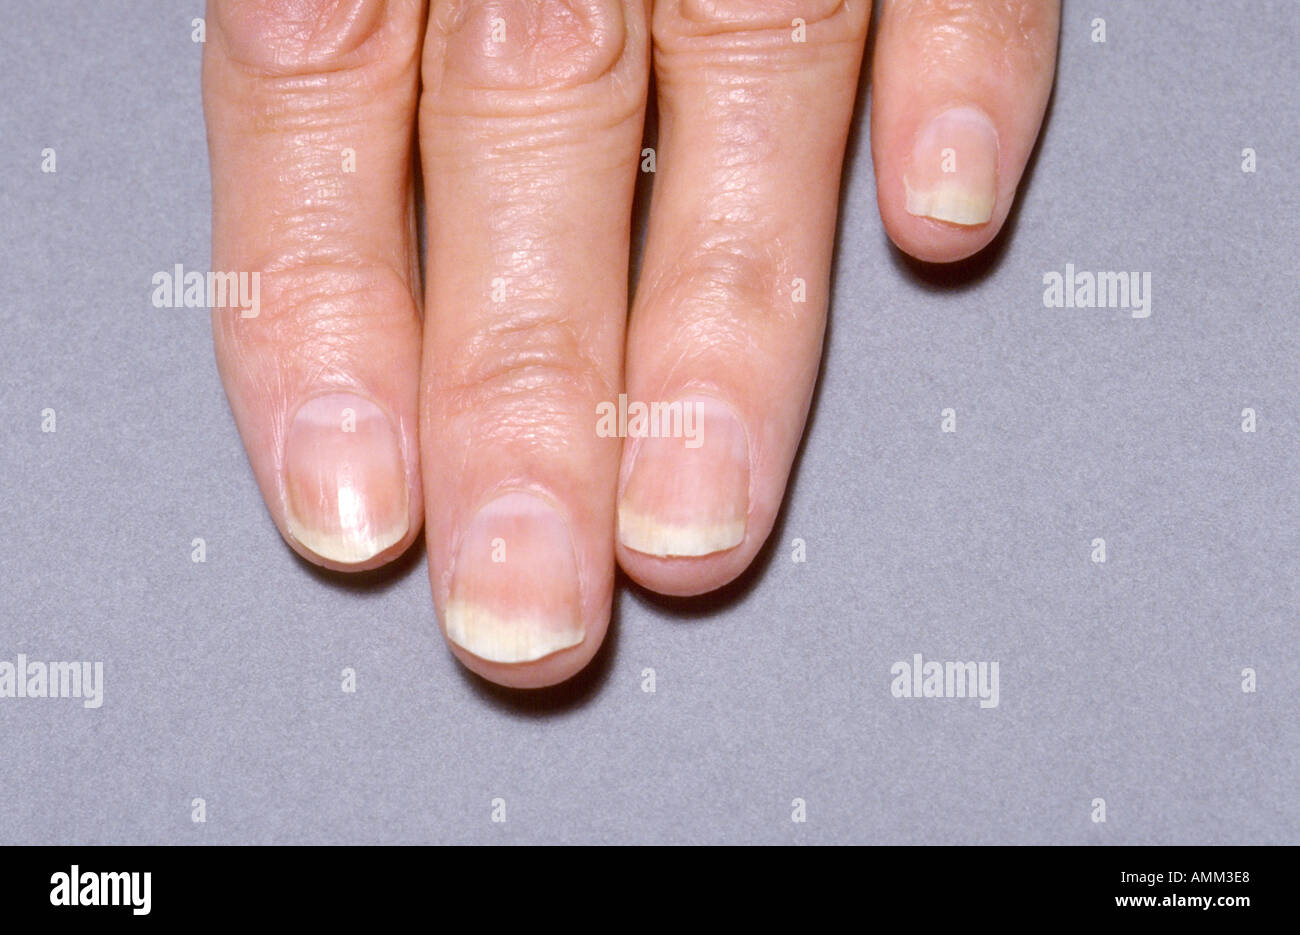 Chronic fungal infection fingernails Stock Photo: 2835431 - Alamy